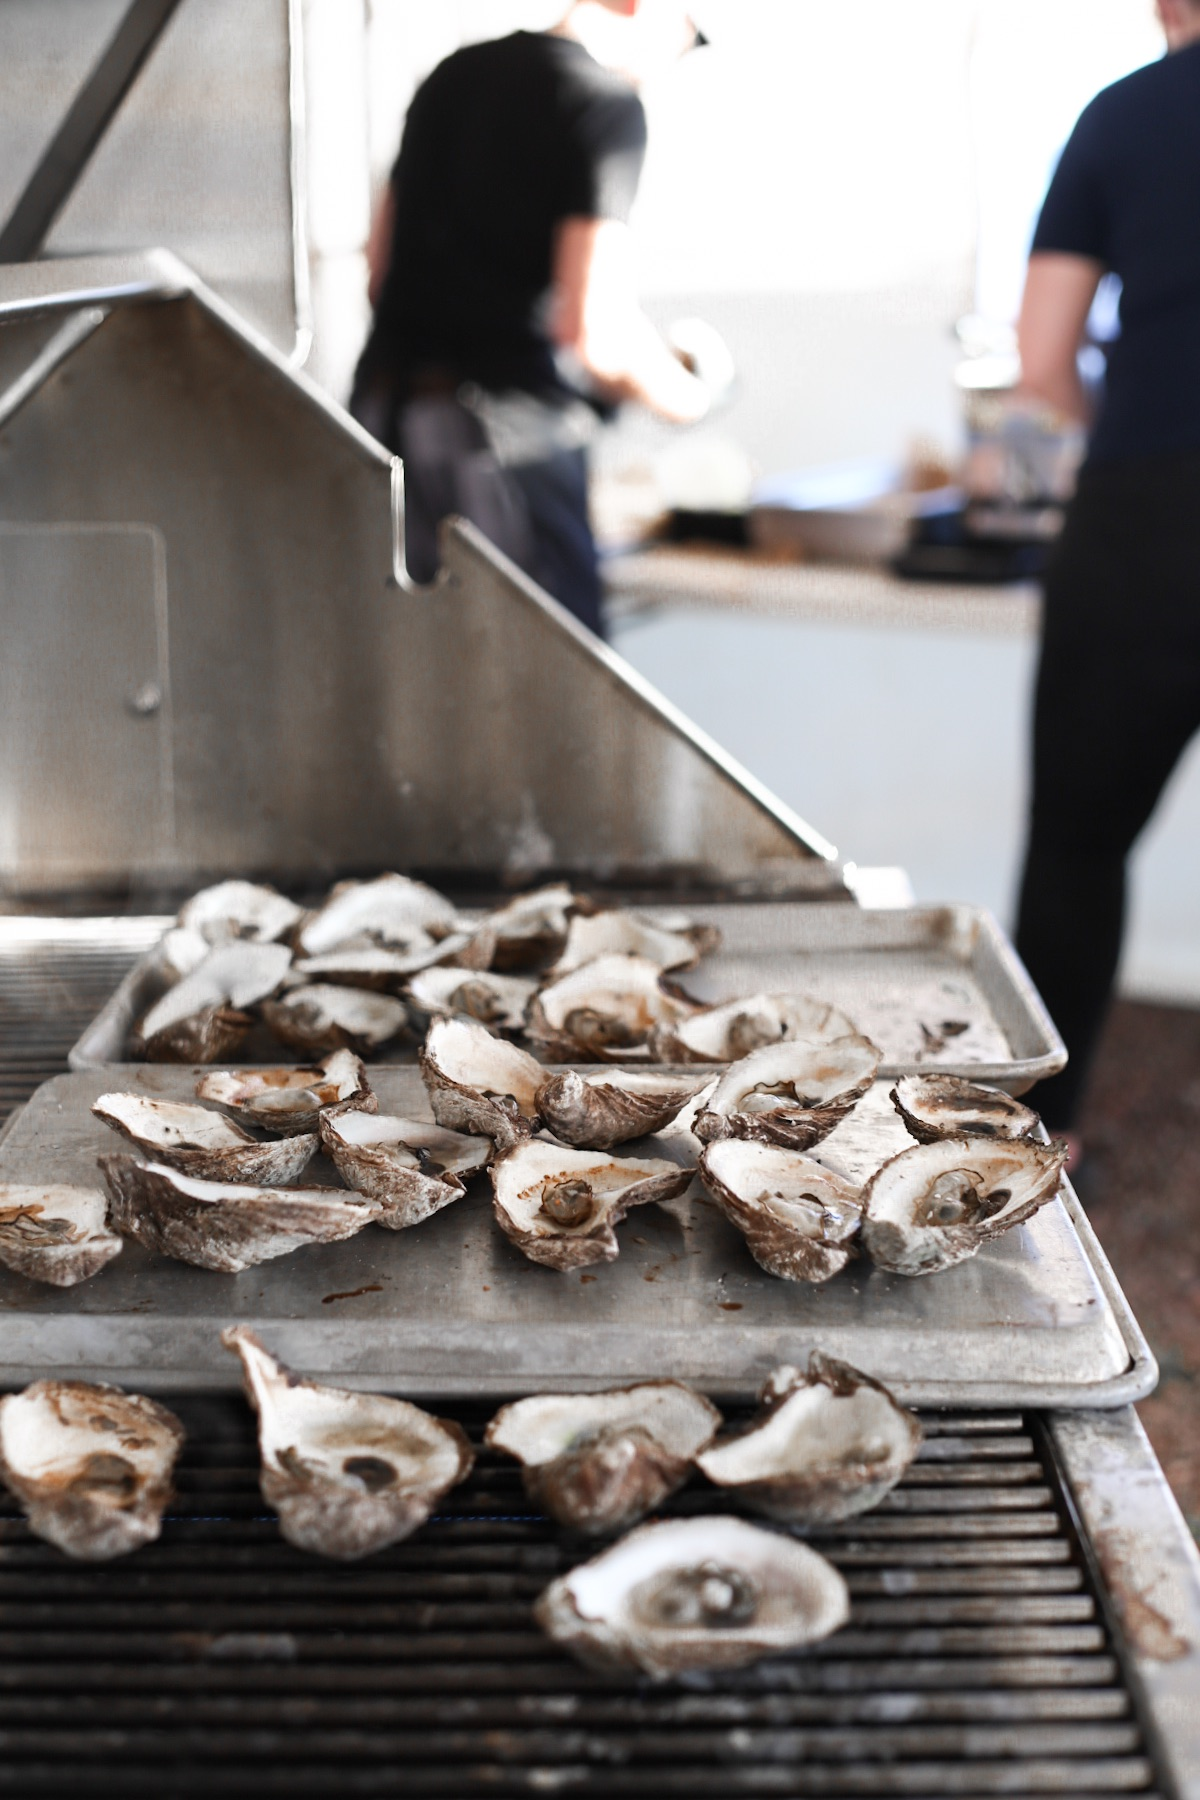 Oysters on the BBQ @ Fall Flavours, Oysters On the Pier